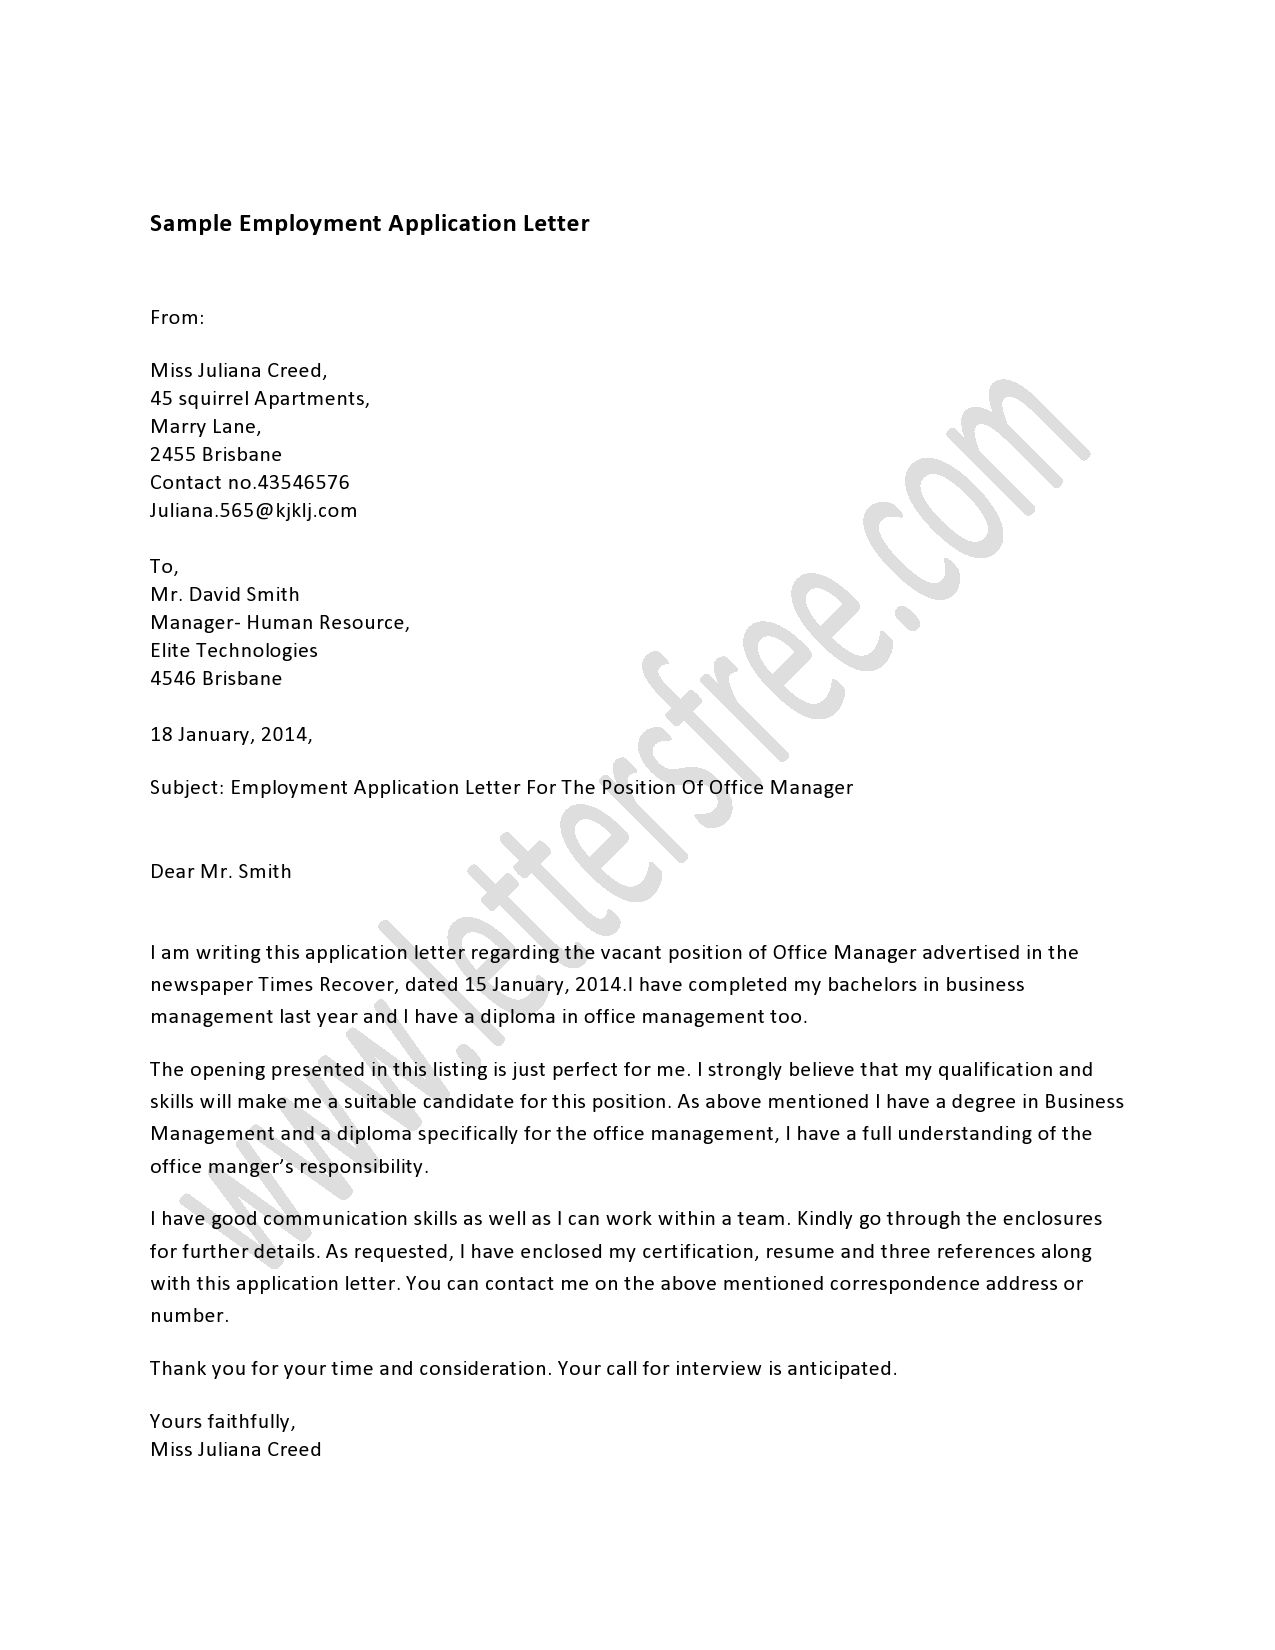 Writing An Employment Application Letter In Response Of A Job